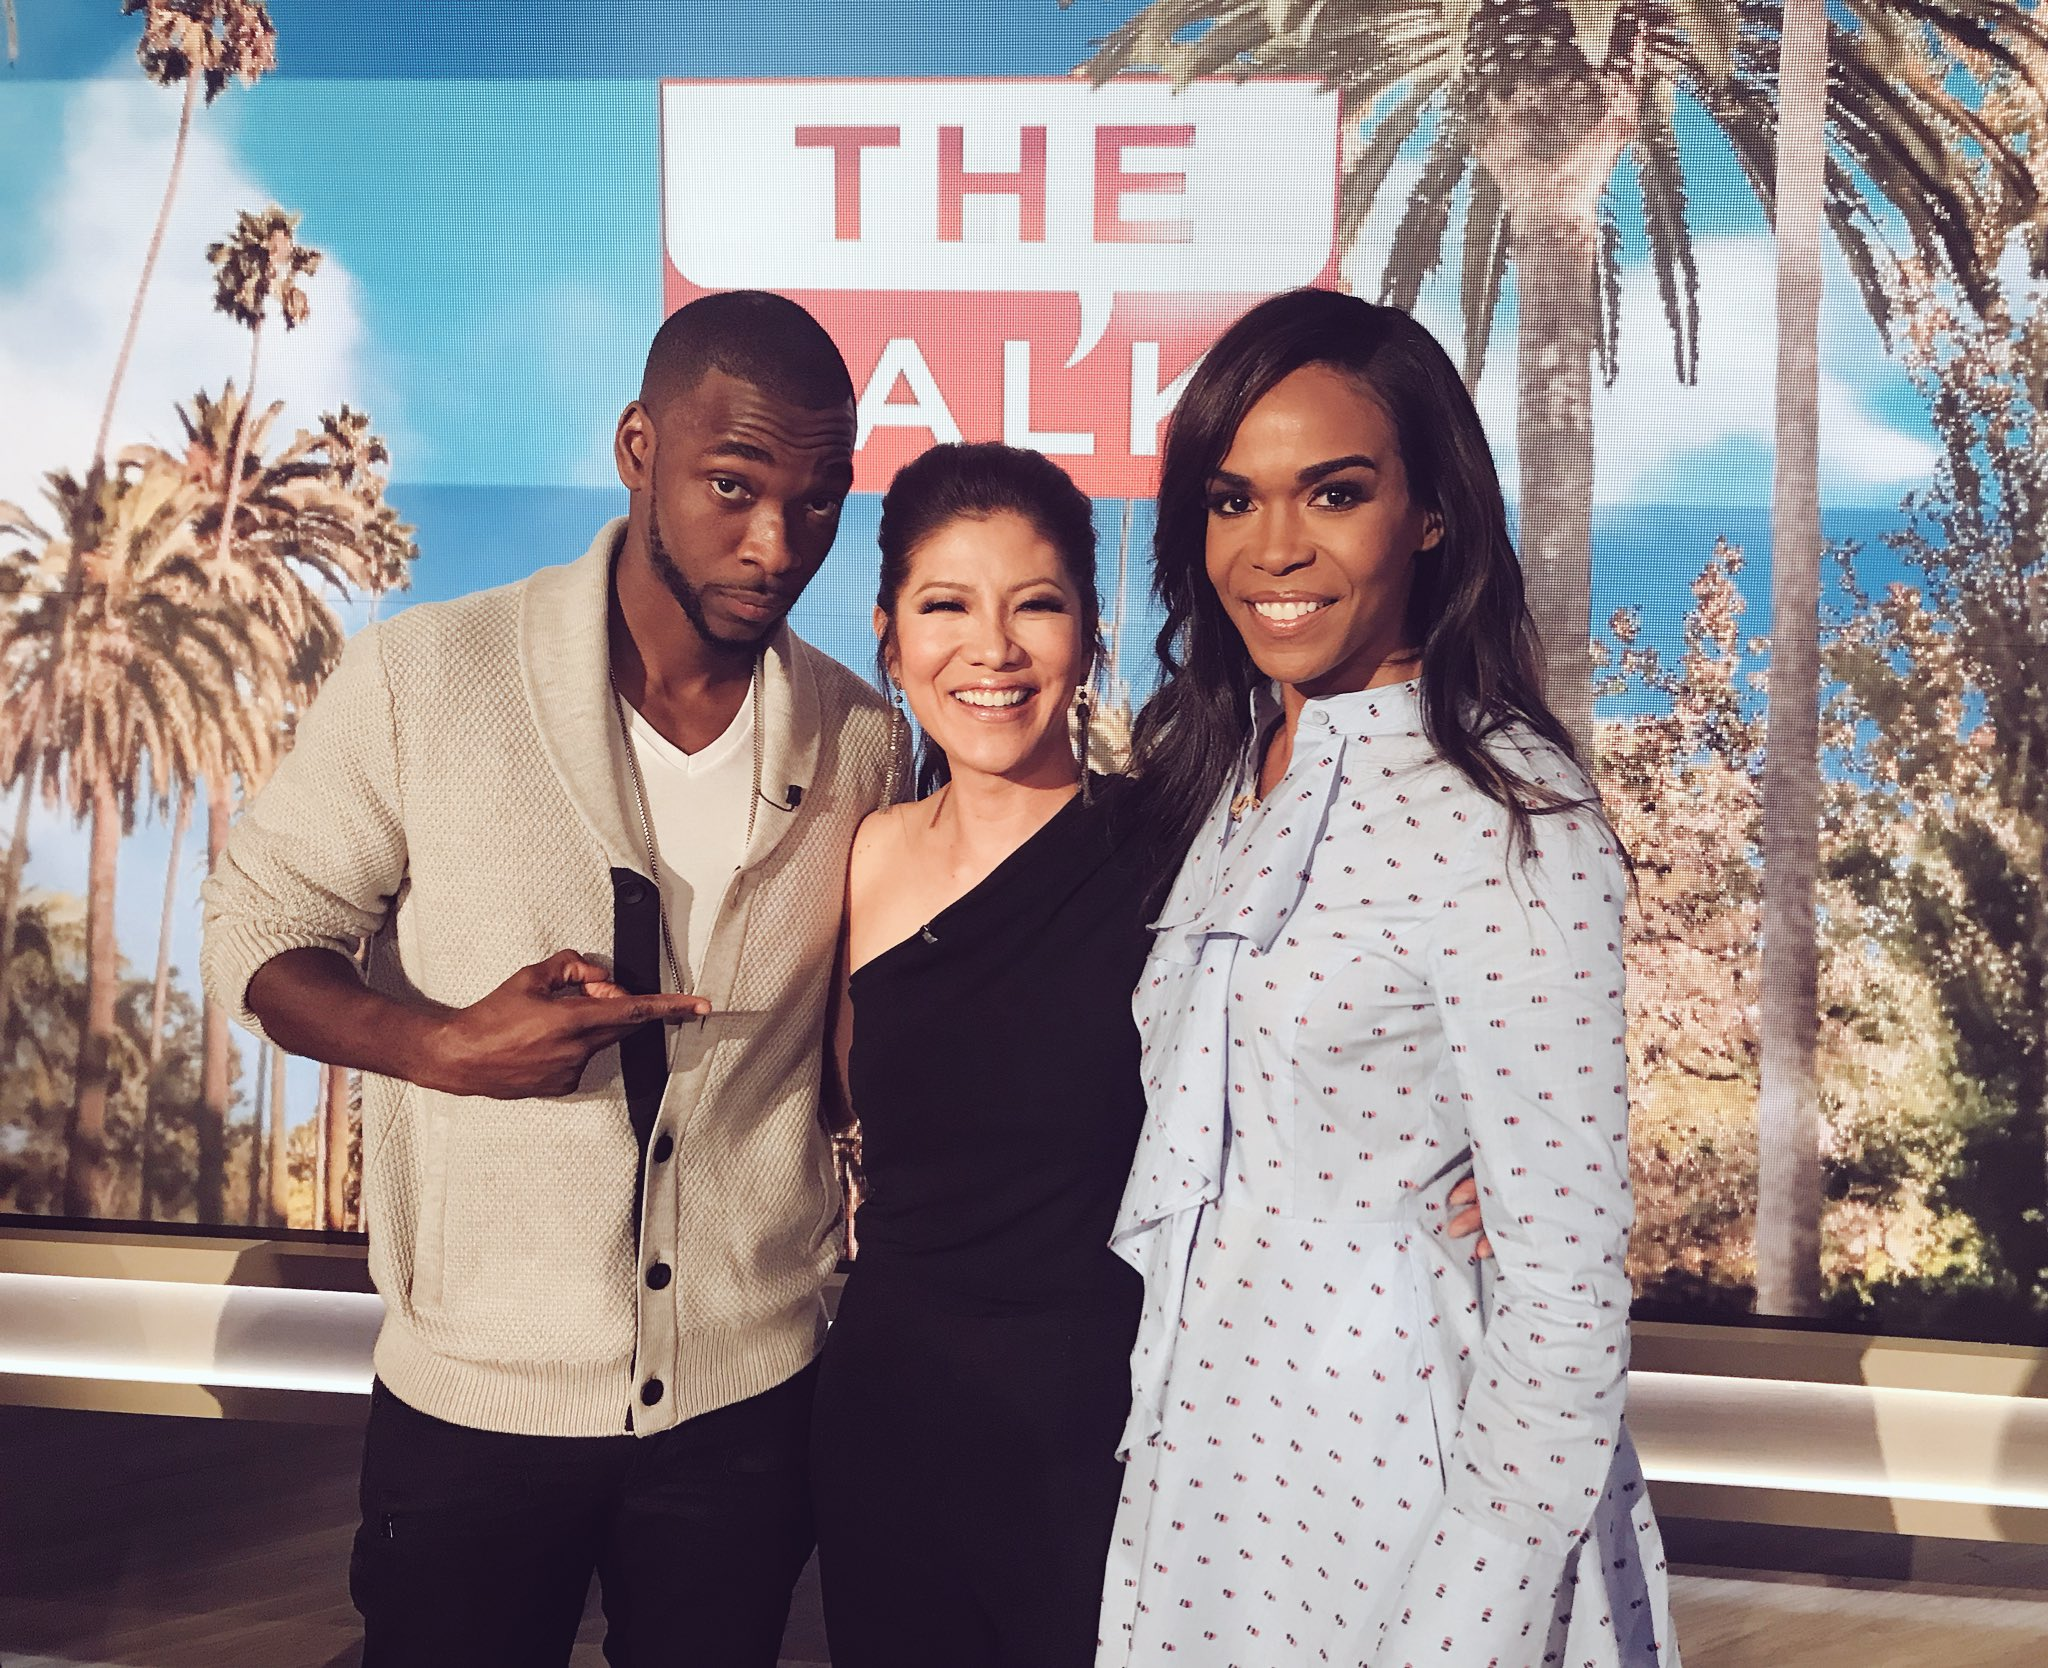 RT @JulieChen: So much fun with @RealMichelleW and @JayPharoah on #TheTalk today! https://t.co/A2aoGP4TNA